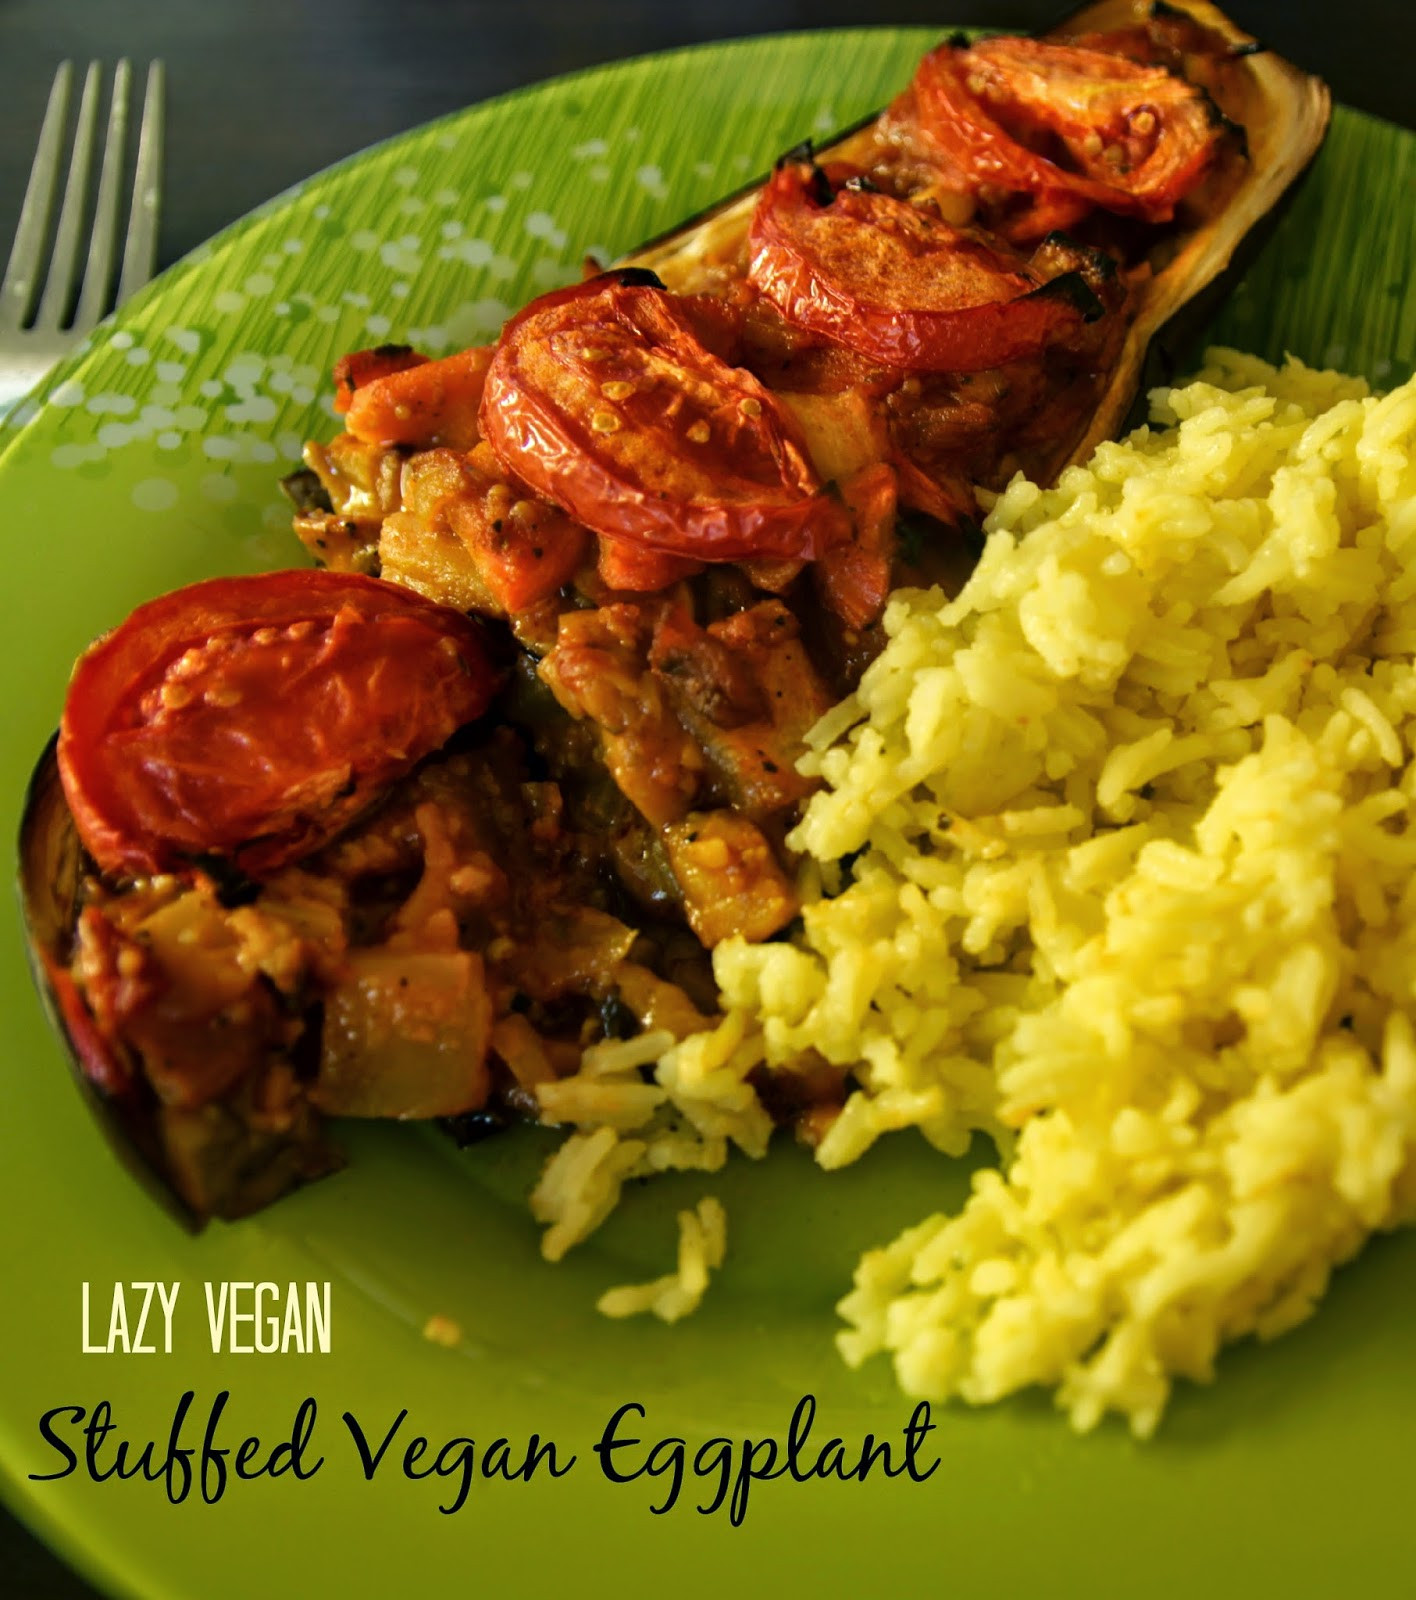 Lazy Vegan Recipes  Lazy Vegan Stuffed Vegan Eggplant